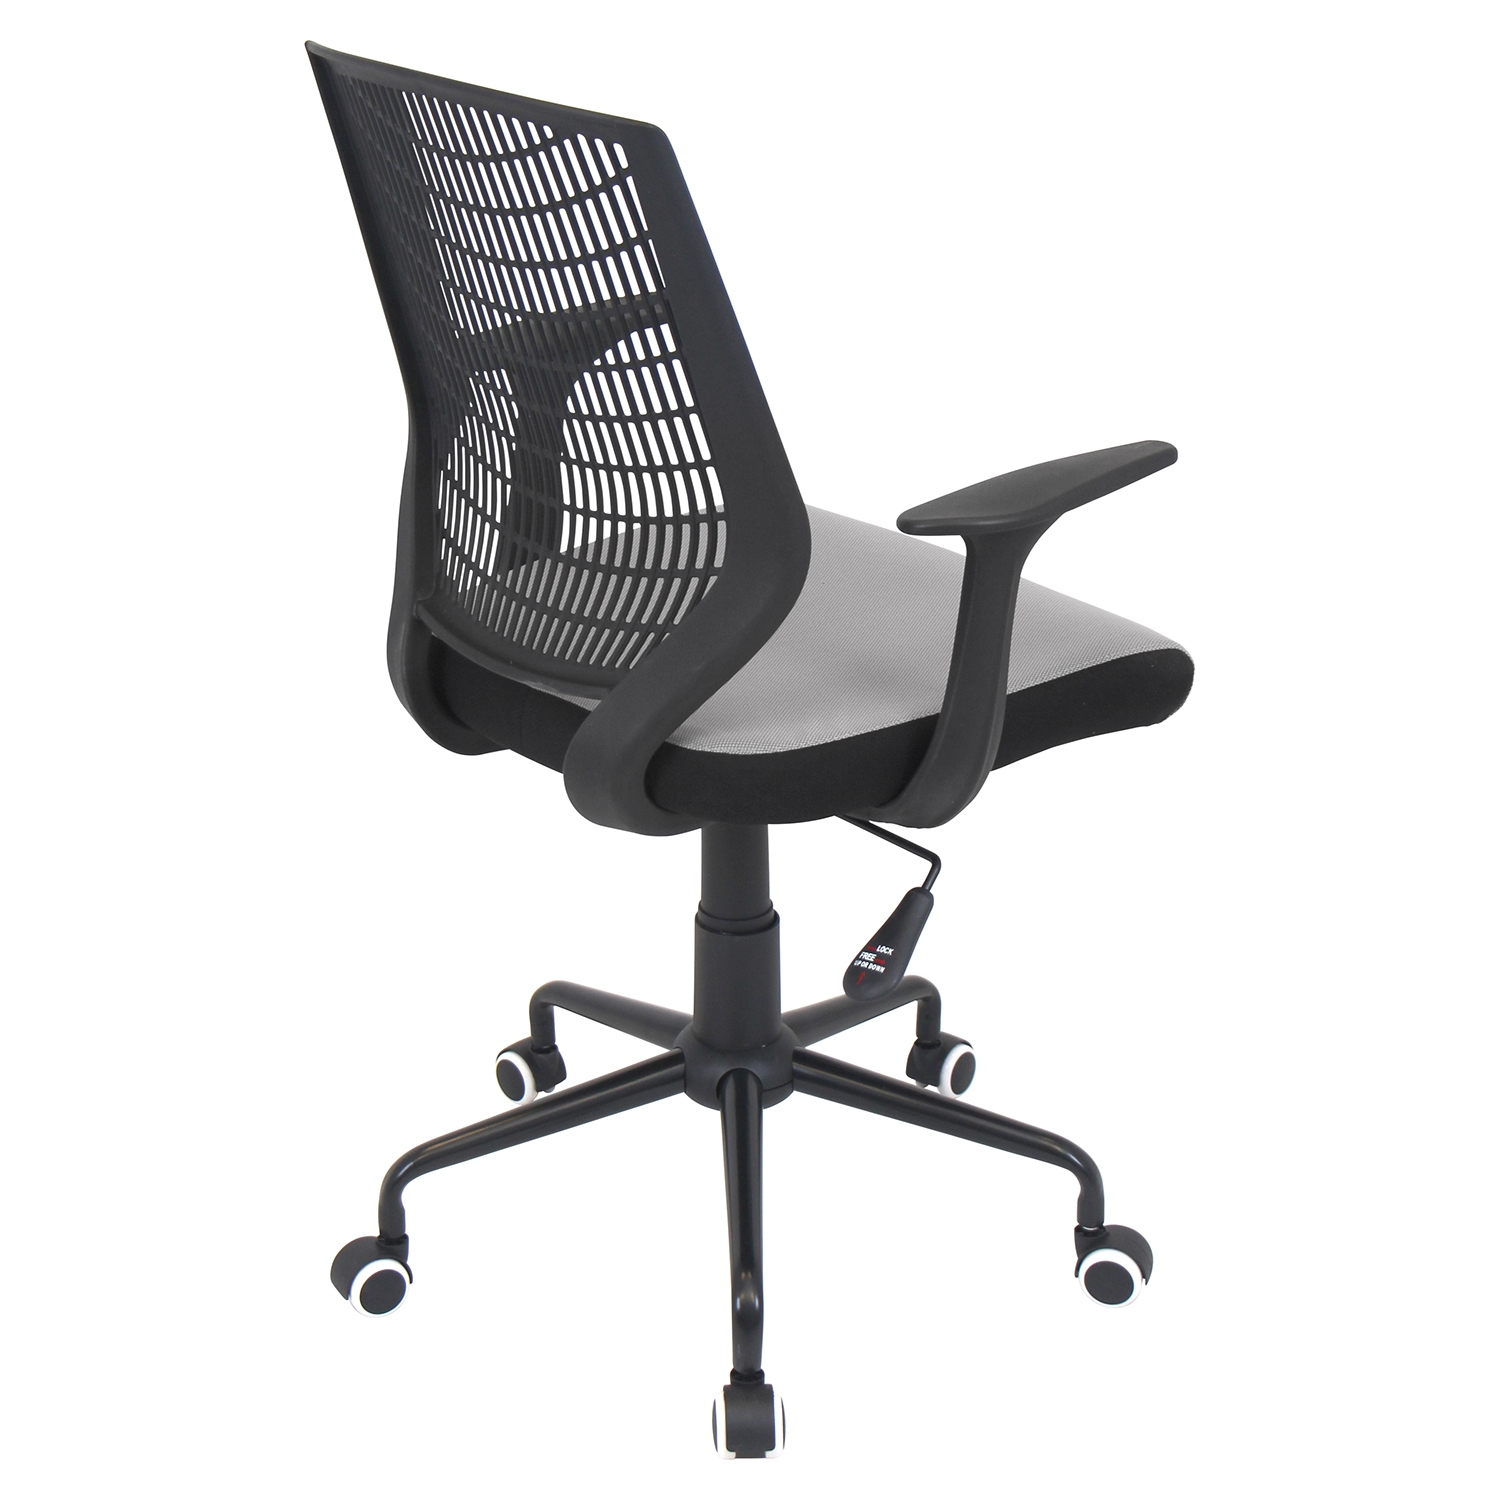 Network Height Adjustable Office Chair - Swivel, Black, Silver - LMS-OFC-NET-BK-SV